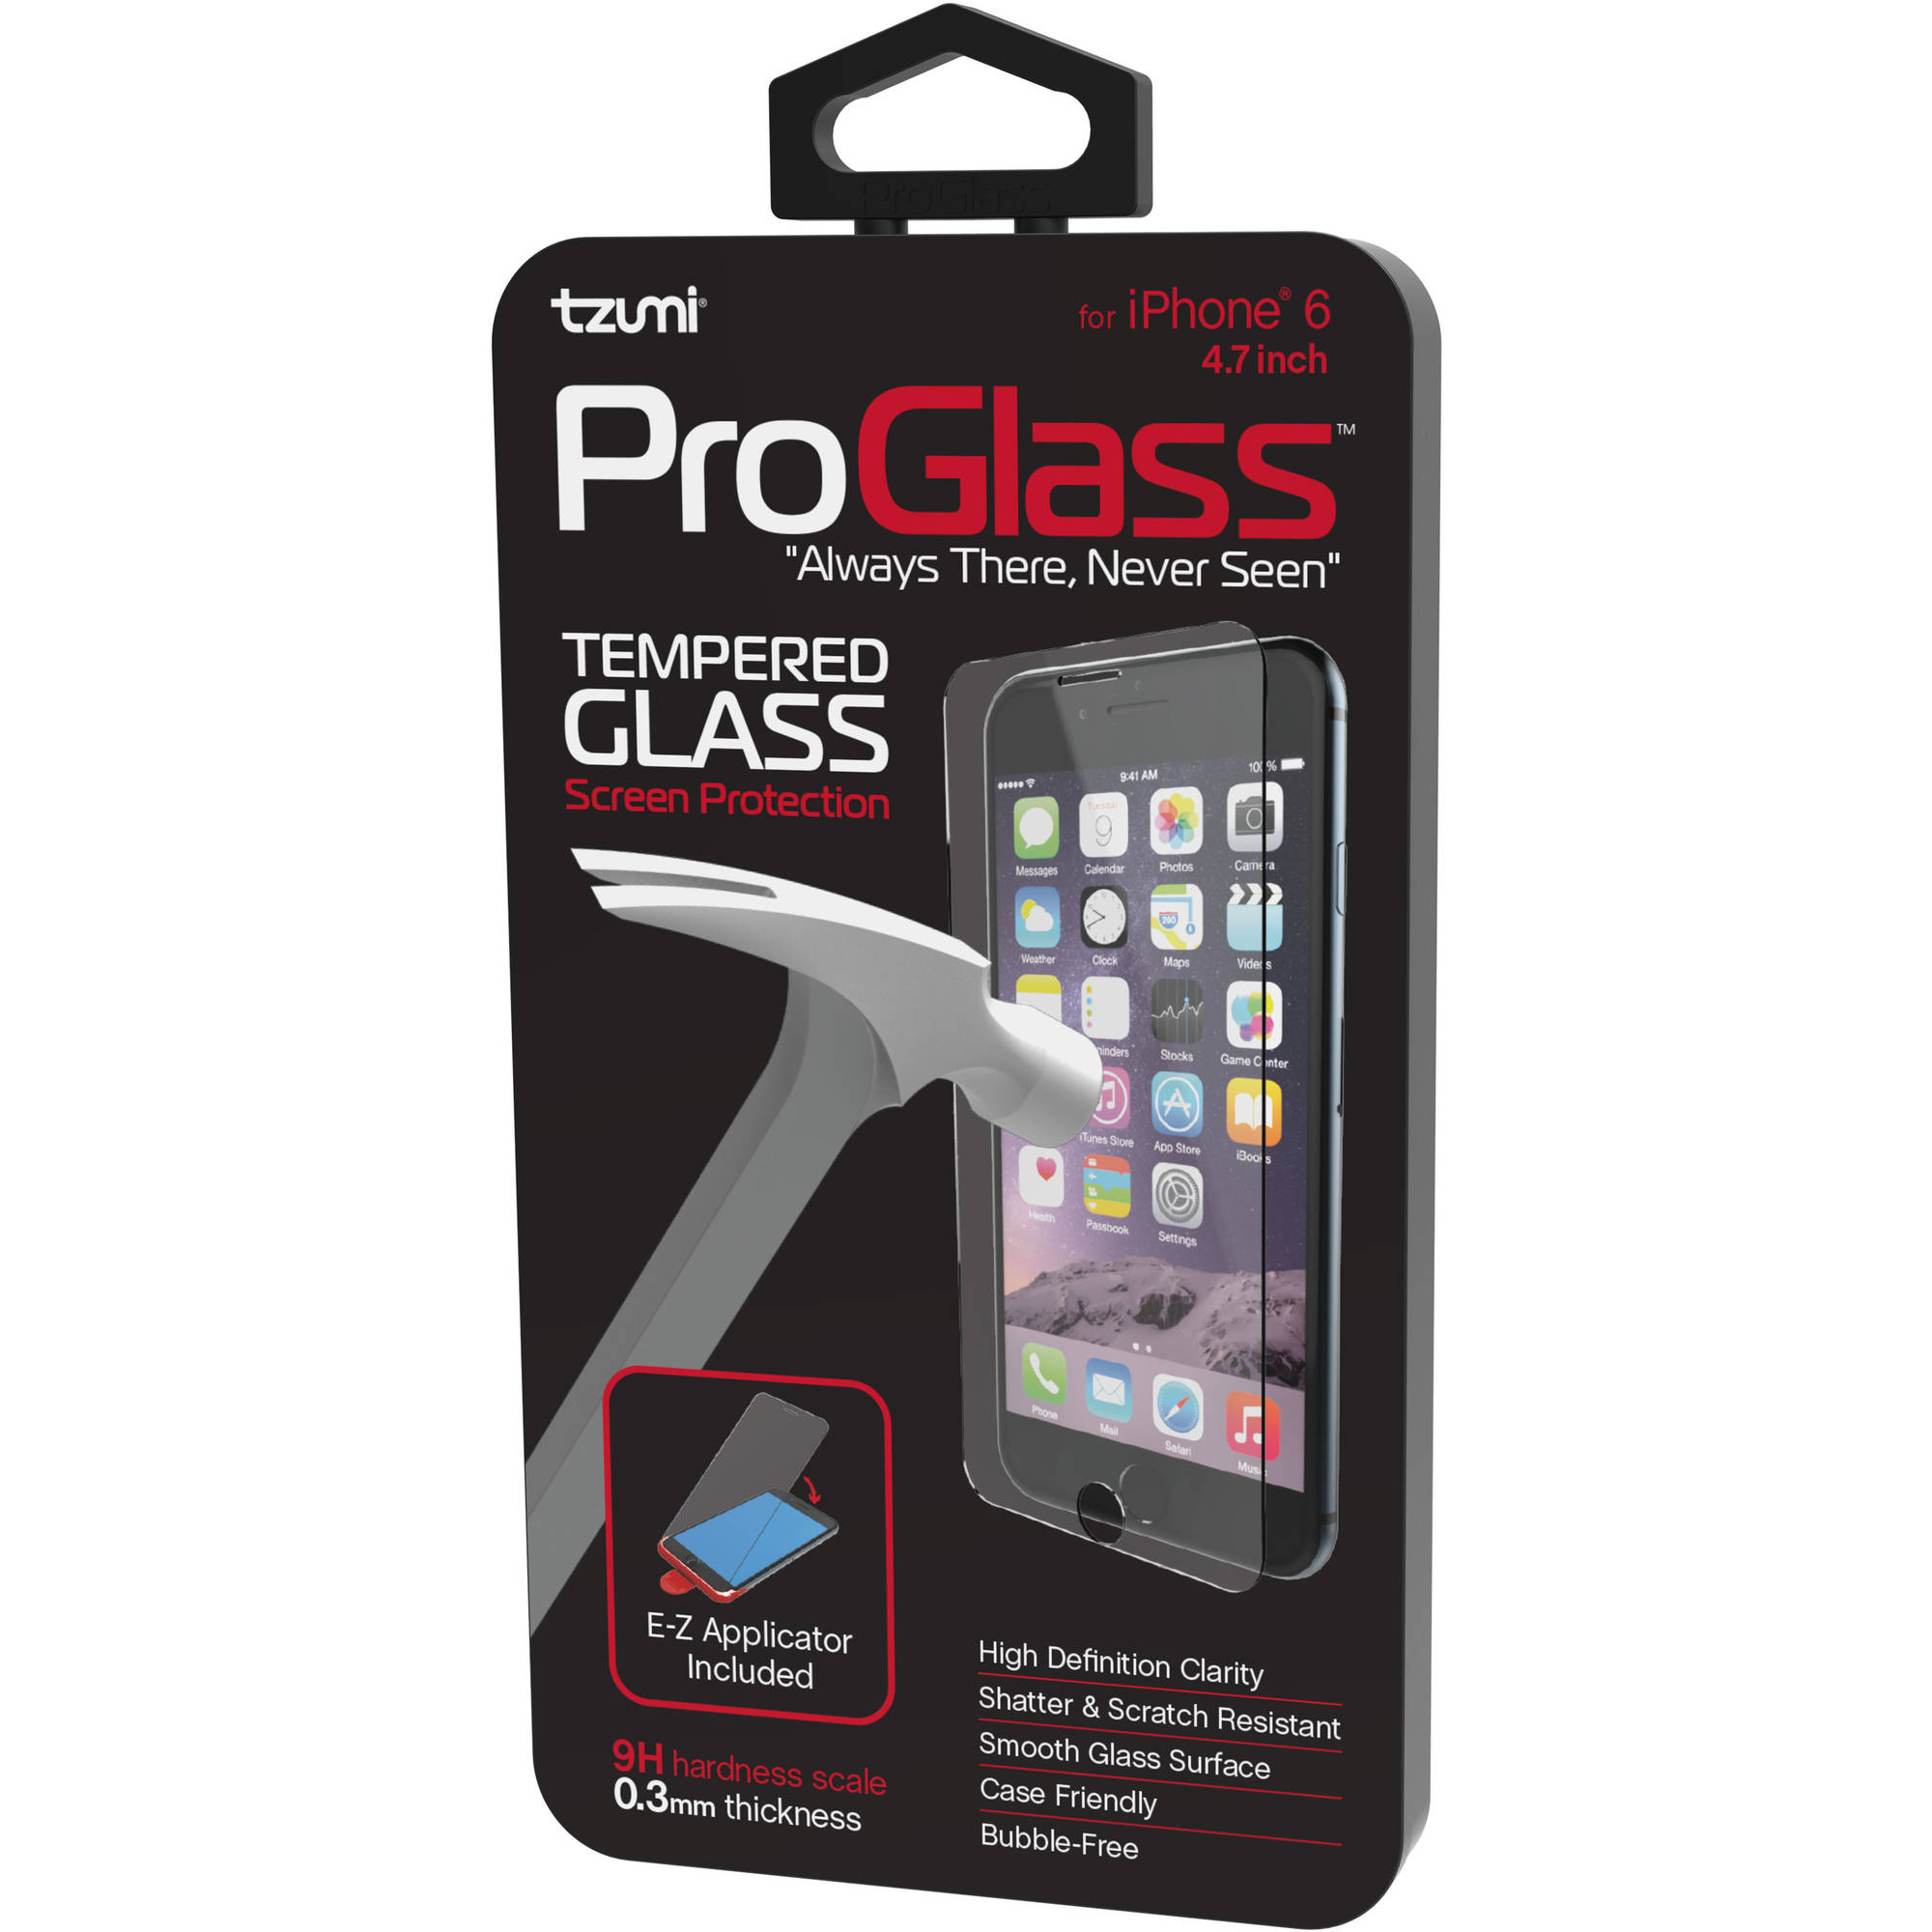 Tzumi ProGlass Premium HD Tempered Glass Screen Protector with Easy Applicator for Apple iPhone 6/6S